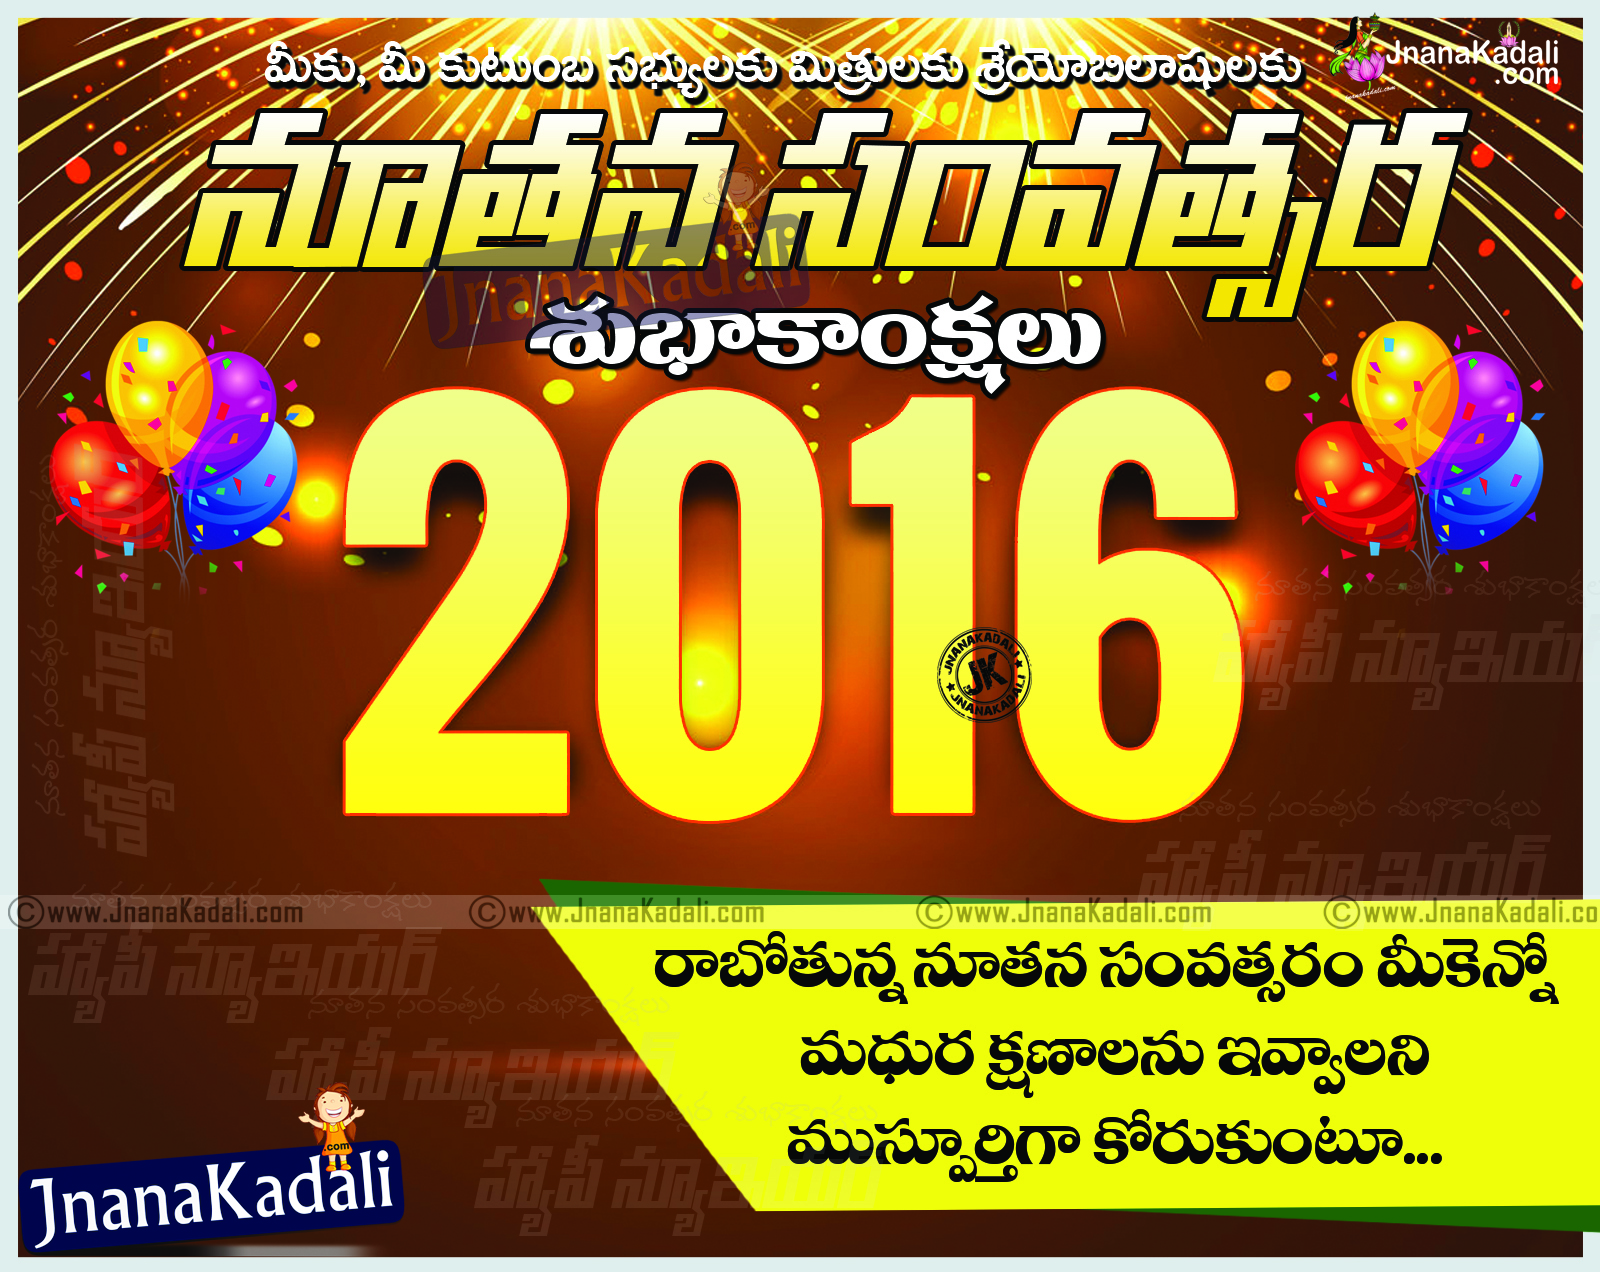 Best Telugu New Year Greetings Wishes Wallpapers With Telugu Quotes